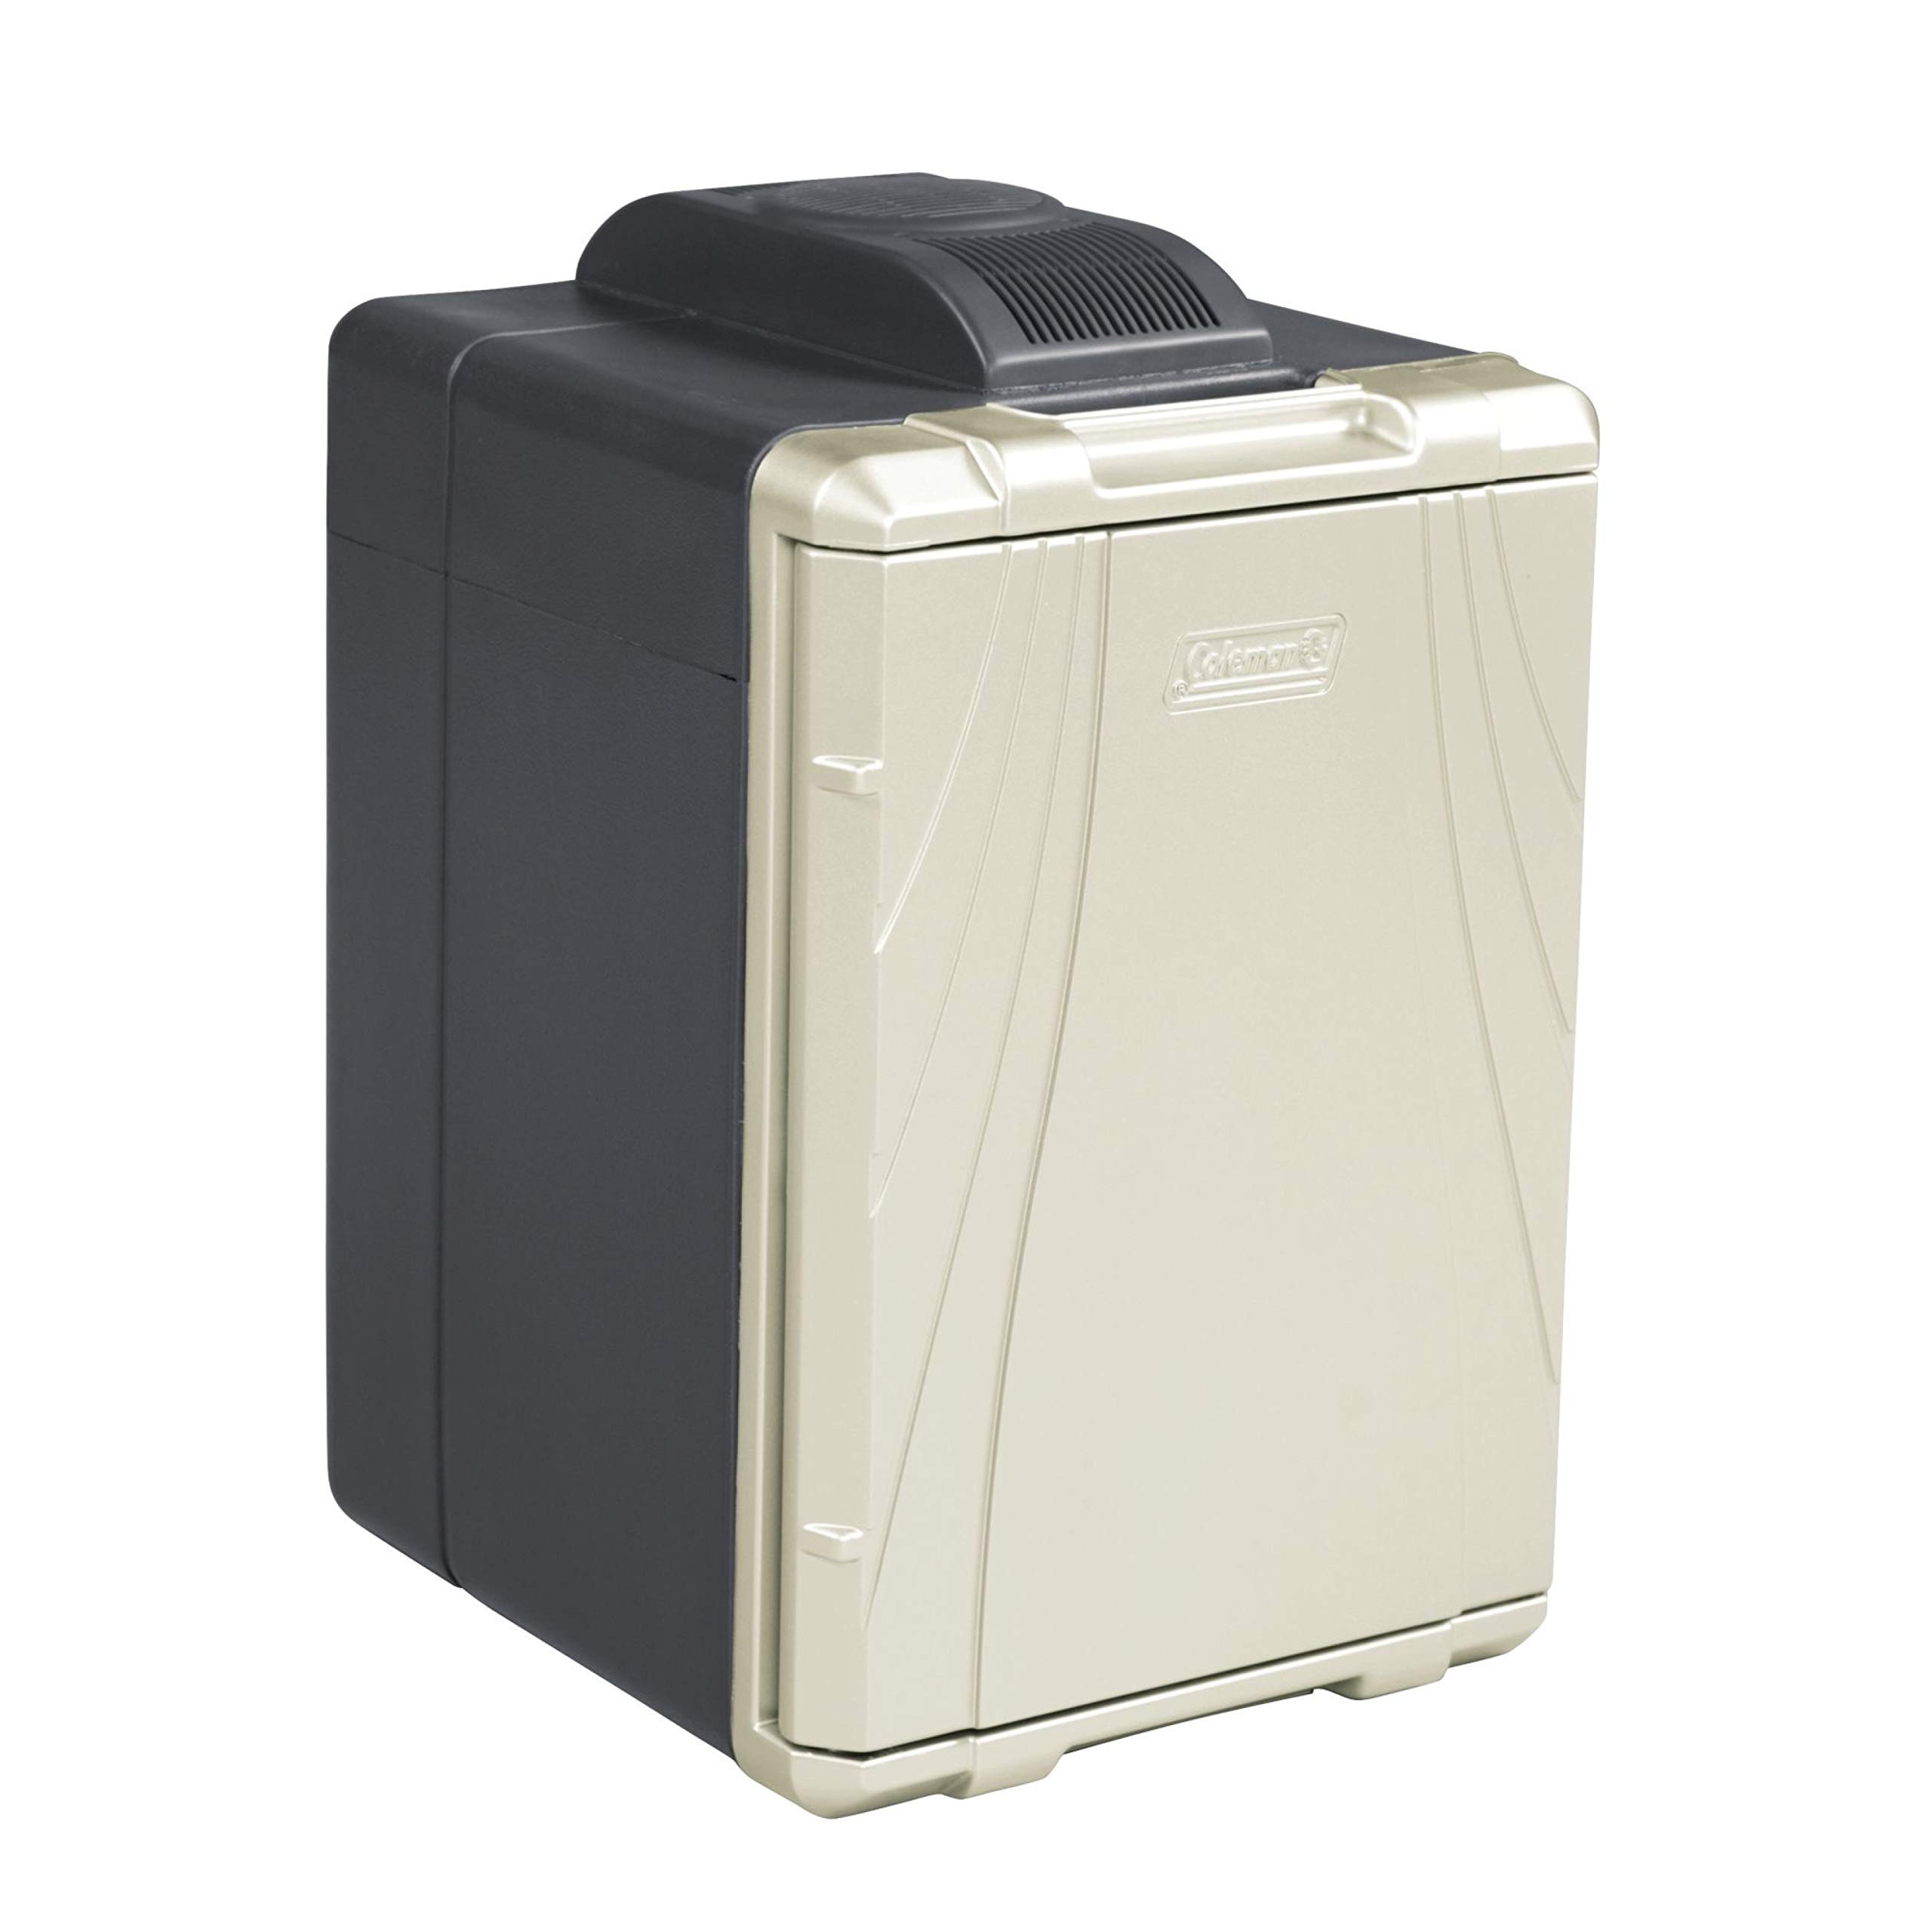 Coleman Cooler| 40-Quart Portable Cooler | Iceless Electric Cooler with cooling technology up to 40°F  for Picnics, BBQs, camping, tailgates and Outdoors